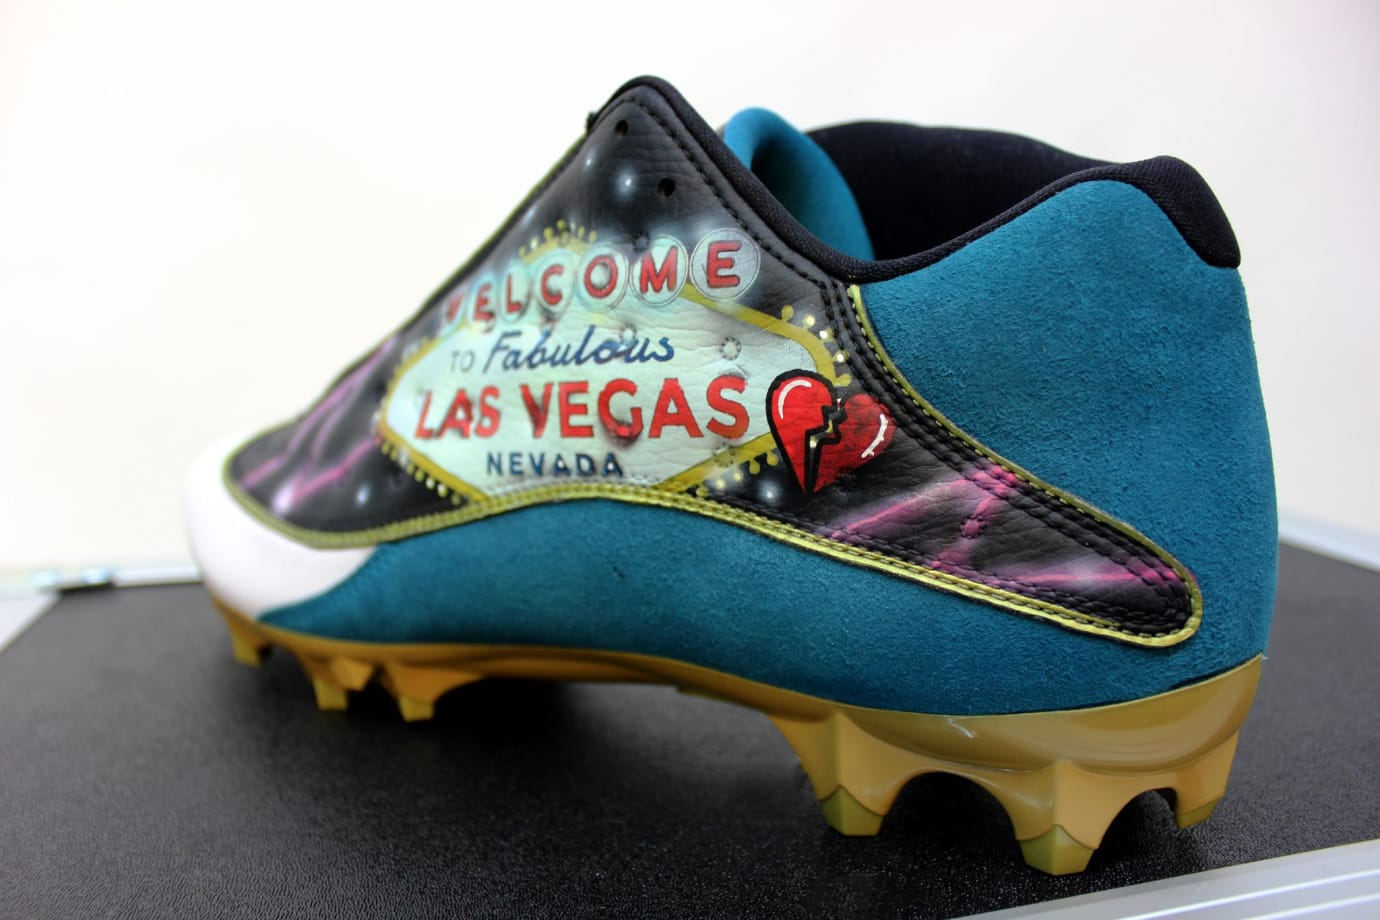 Jalen Ramsey Air Jordan 13 Low Las Vegas Victims Cleats (3)